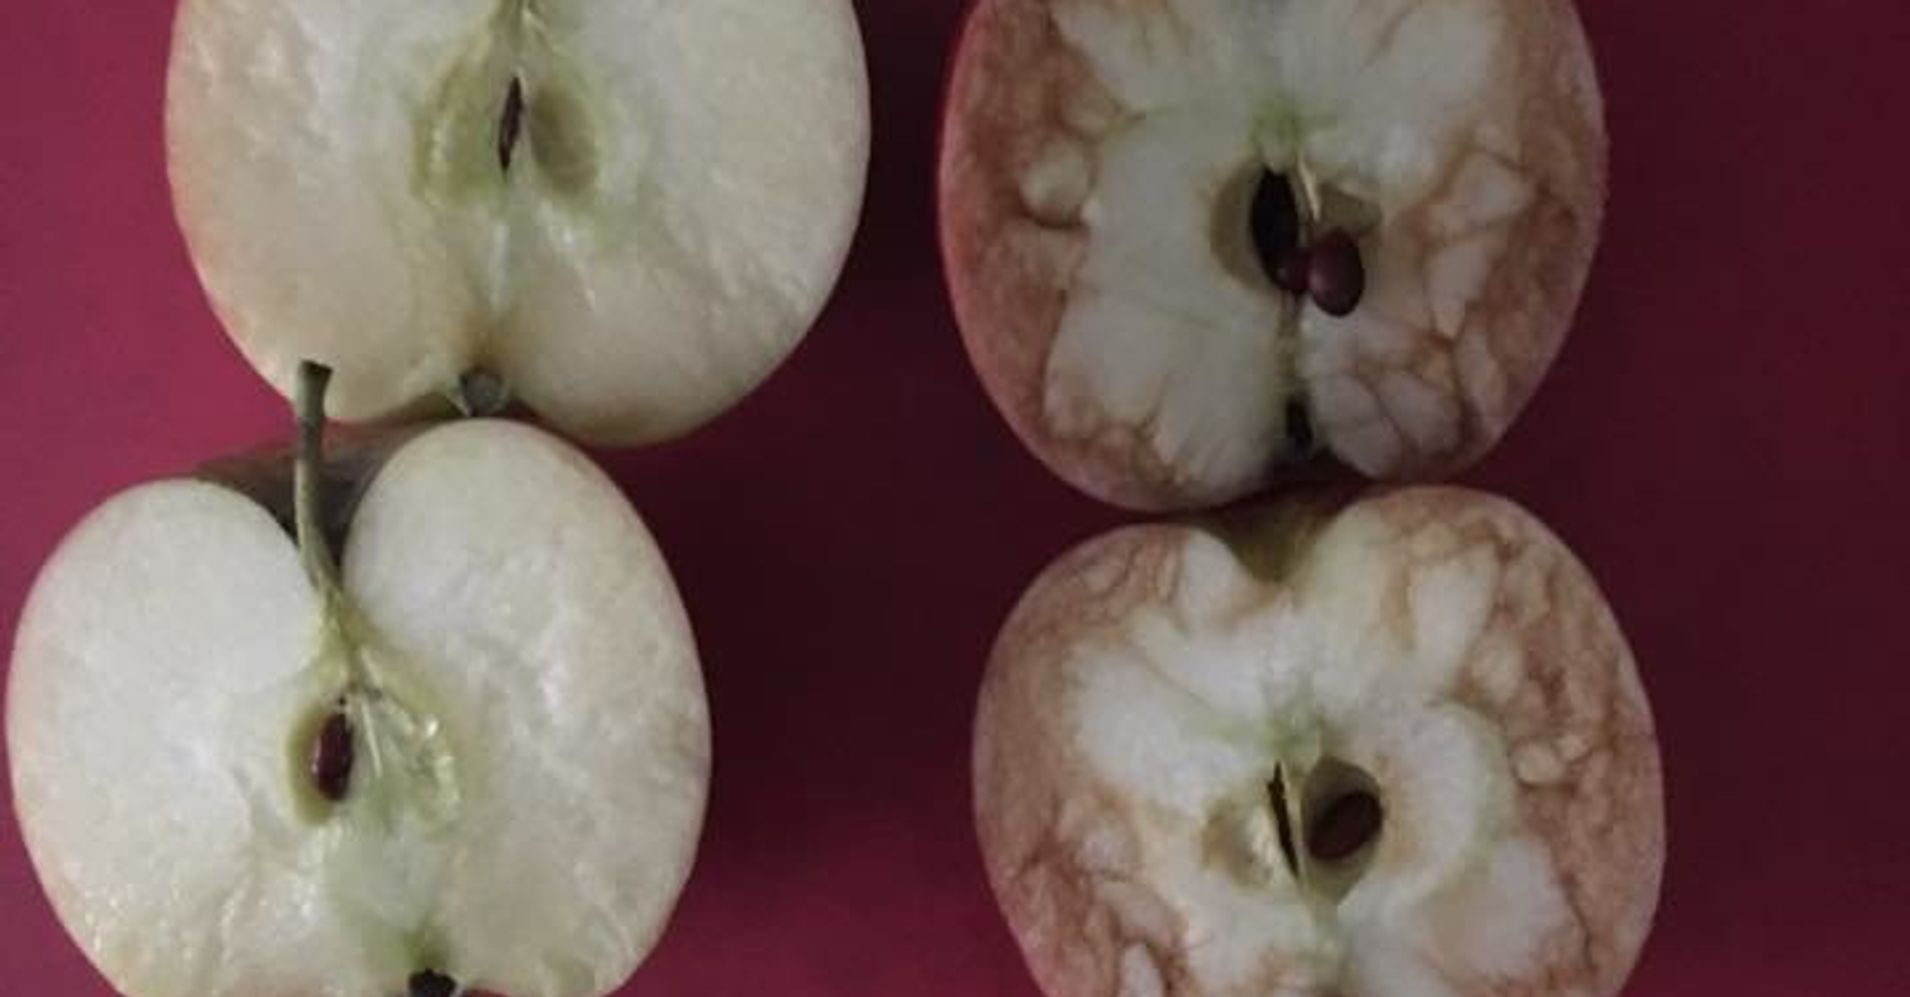 Teacher Uses Bruised Apple To Show Crushing Effects Of